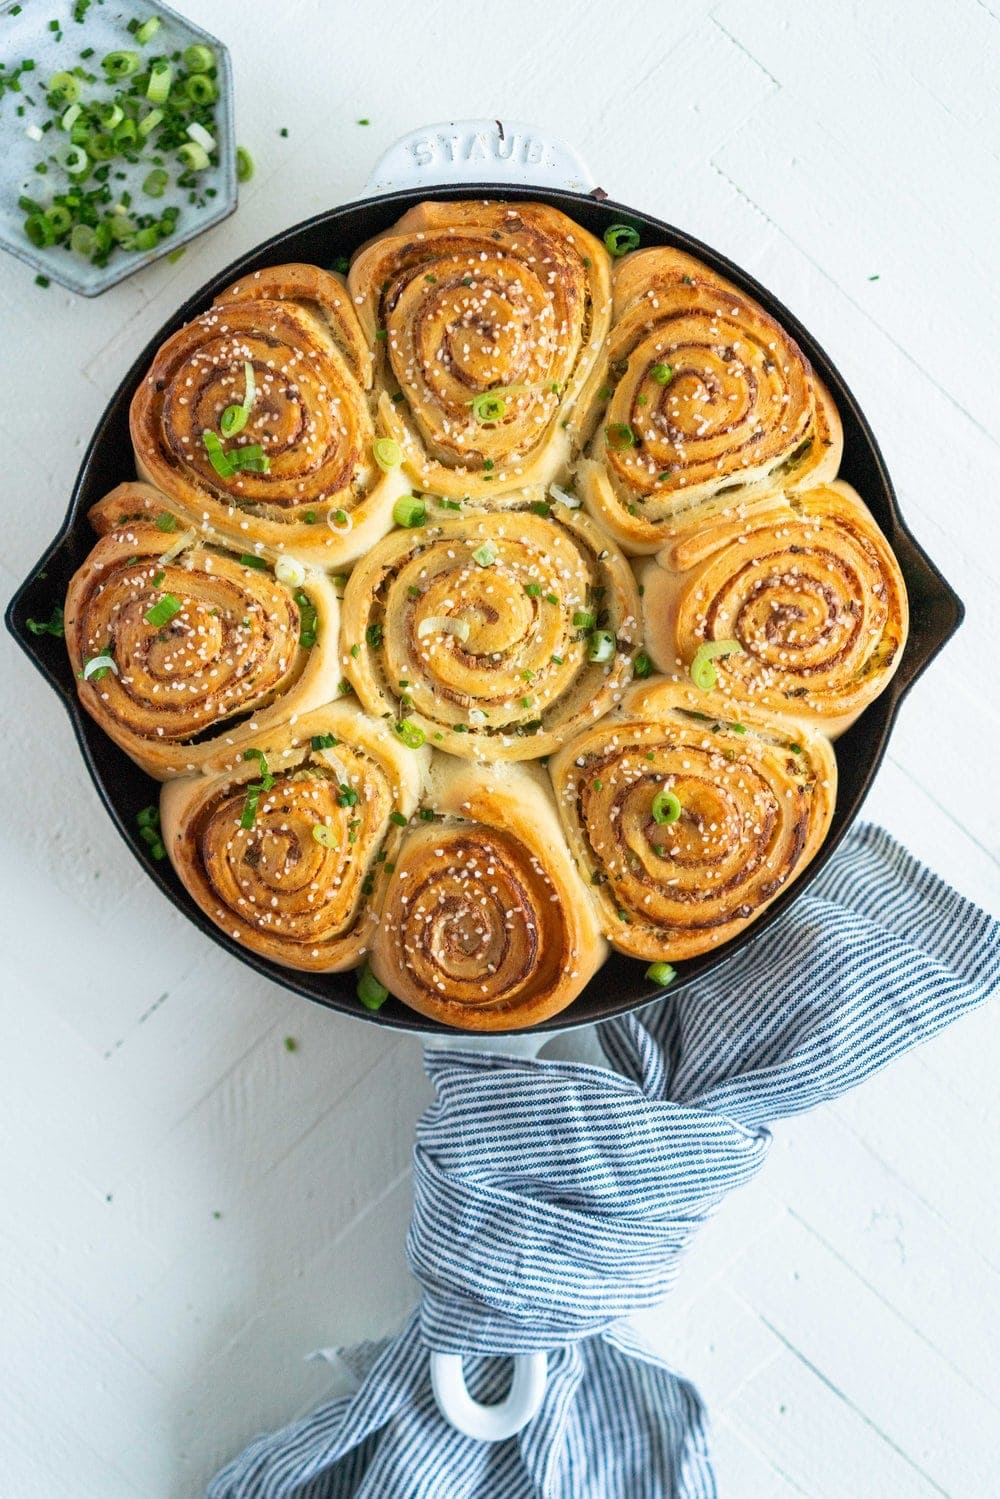 baked cheese, scallion and chive buns